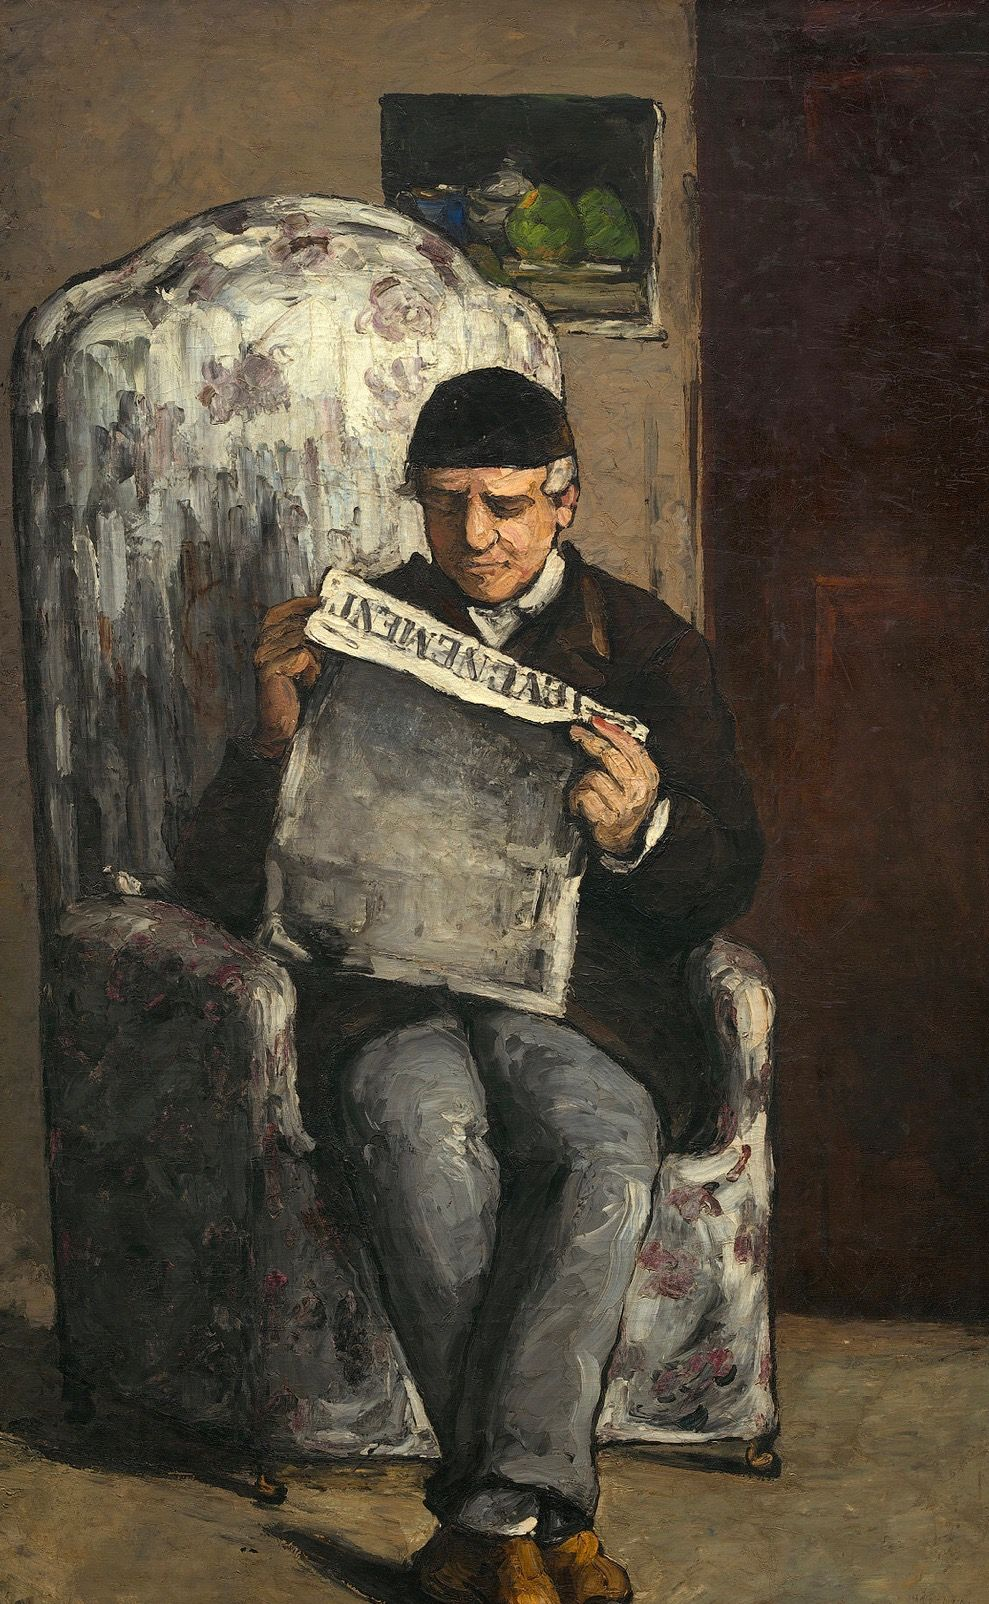 1886 - Retrato de Louis Auguste Cézanne | Retrato, The wonders